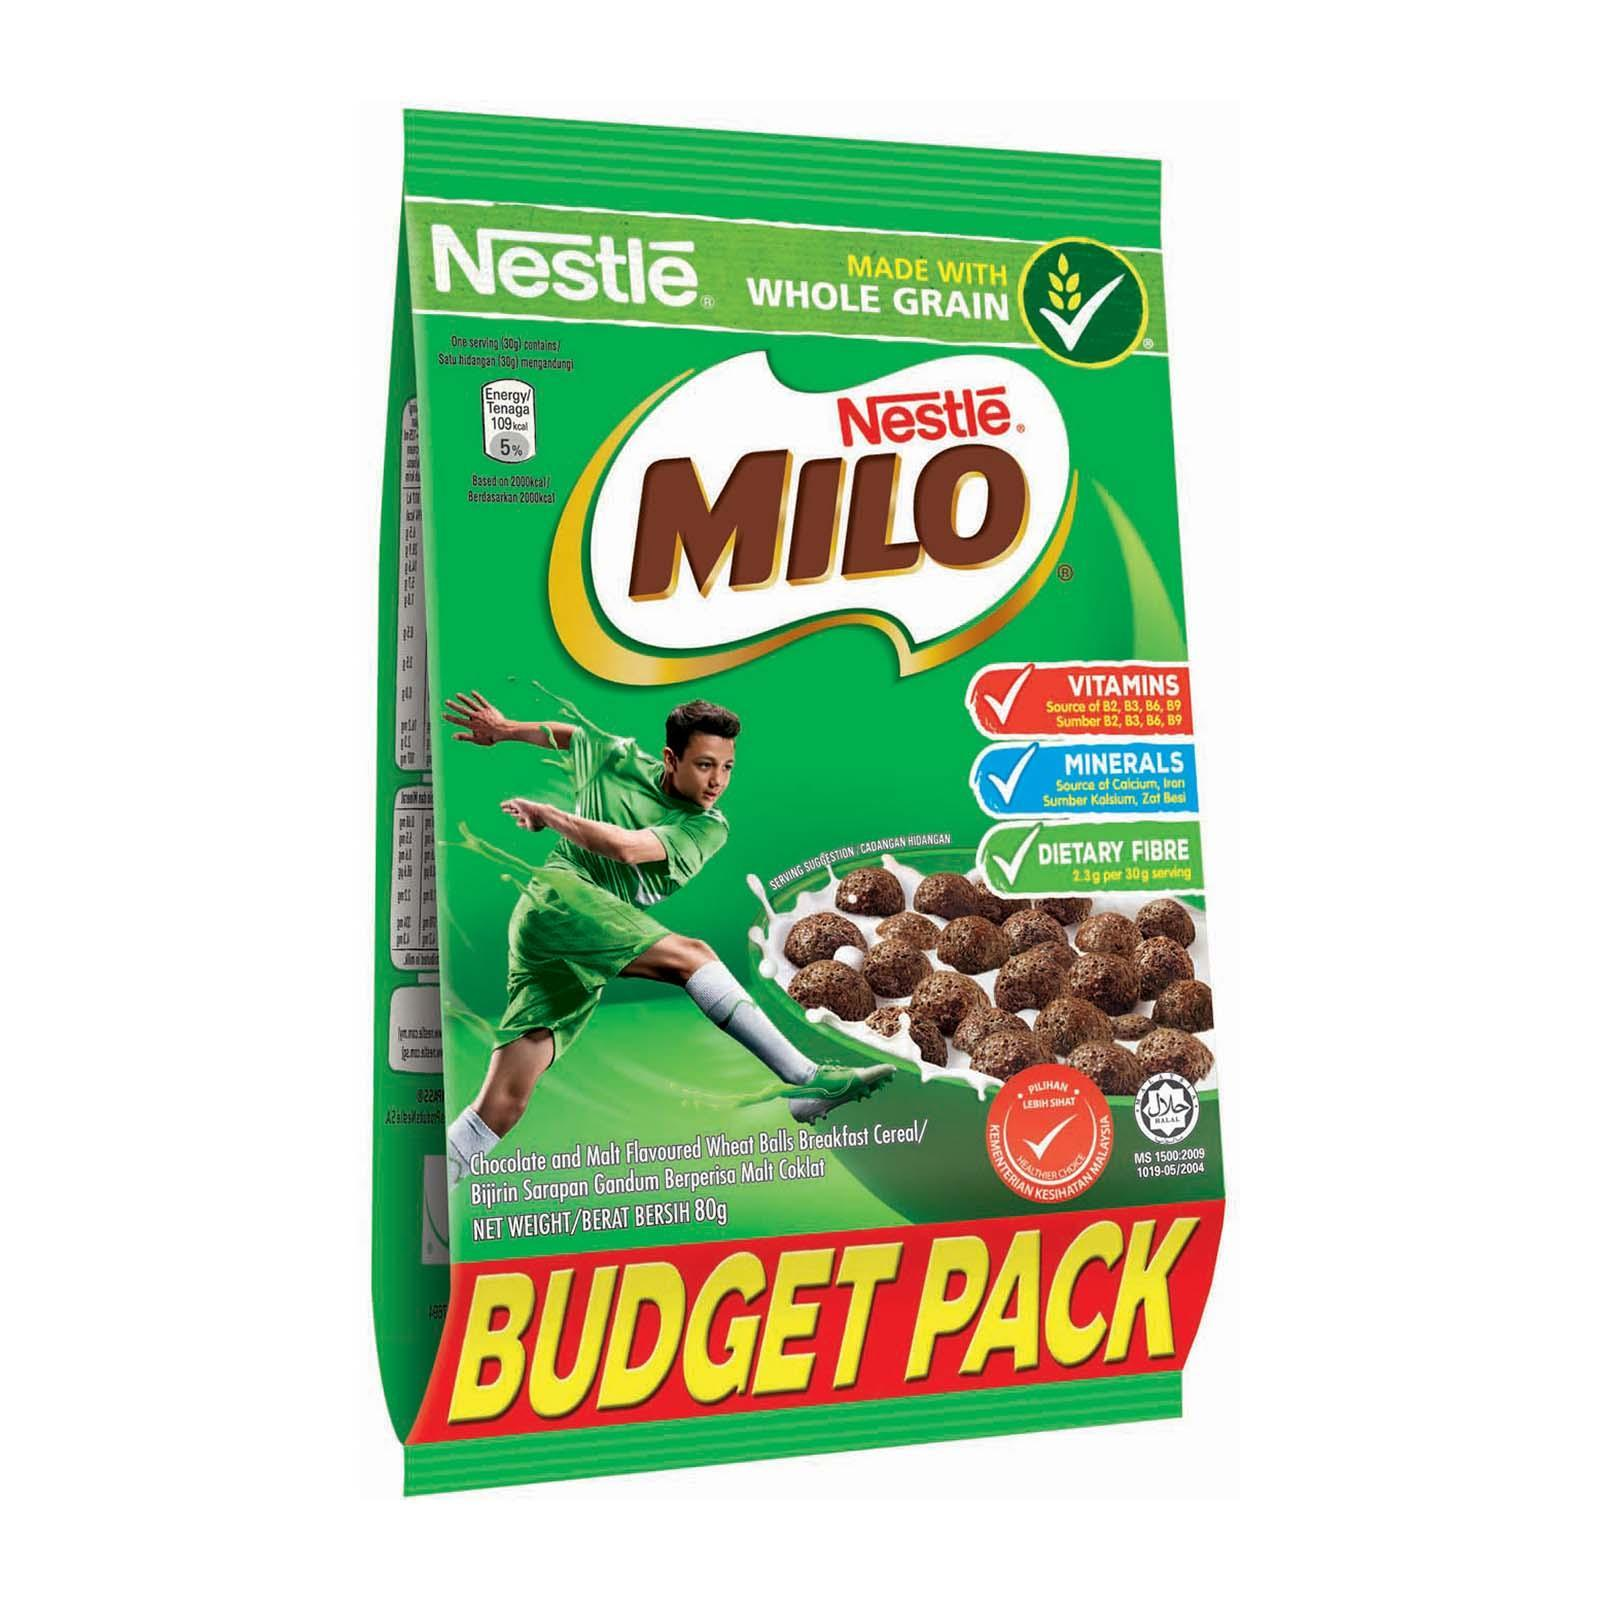 NESTLE MILO Cereal With Whole GrainPouch